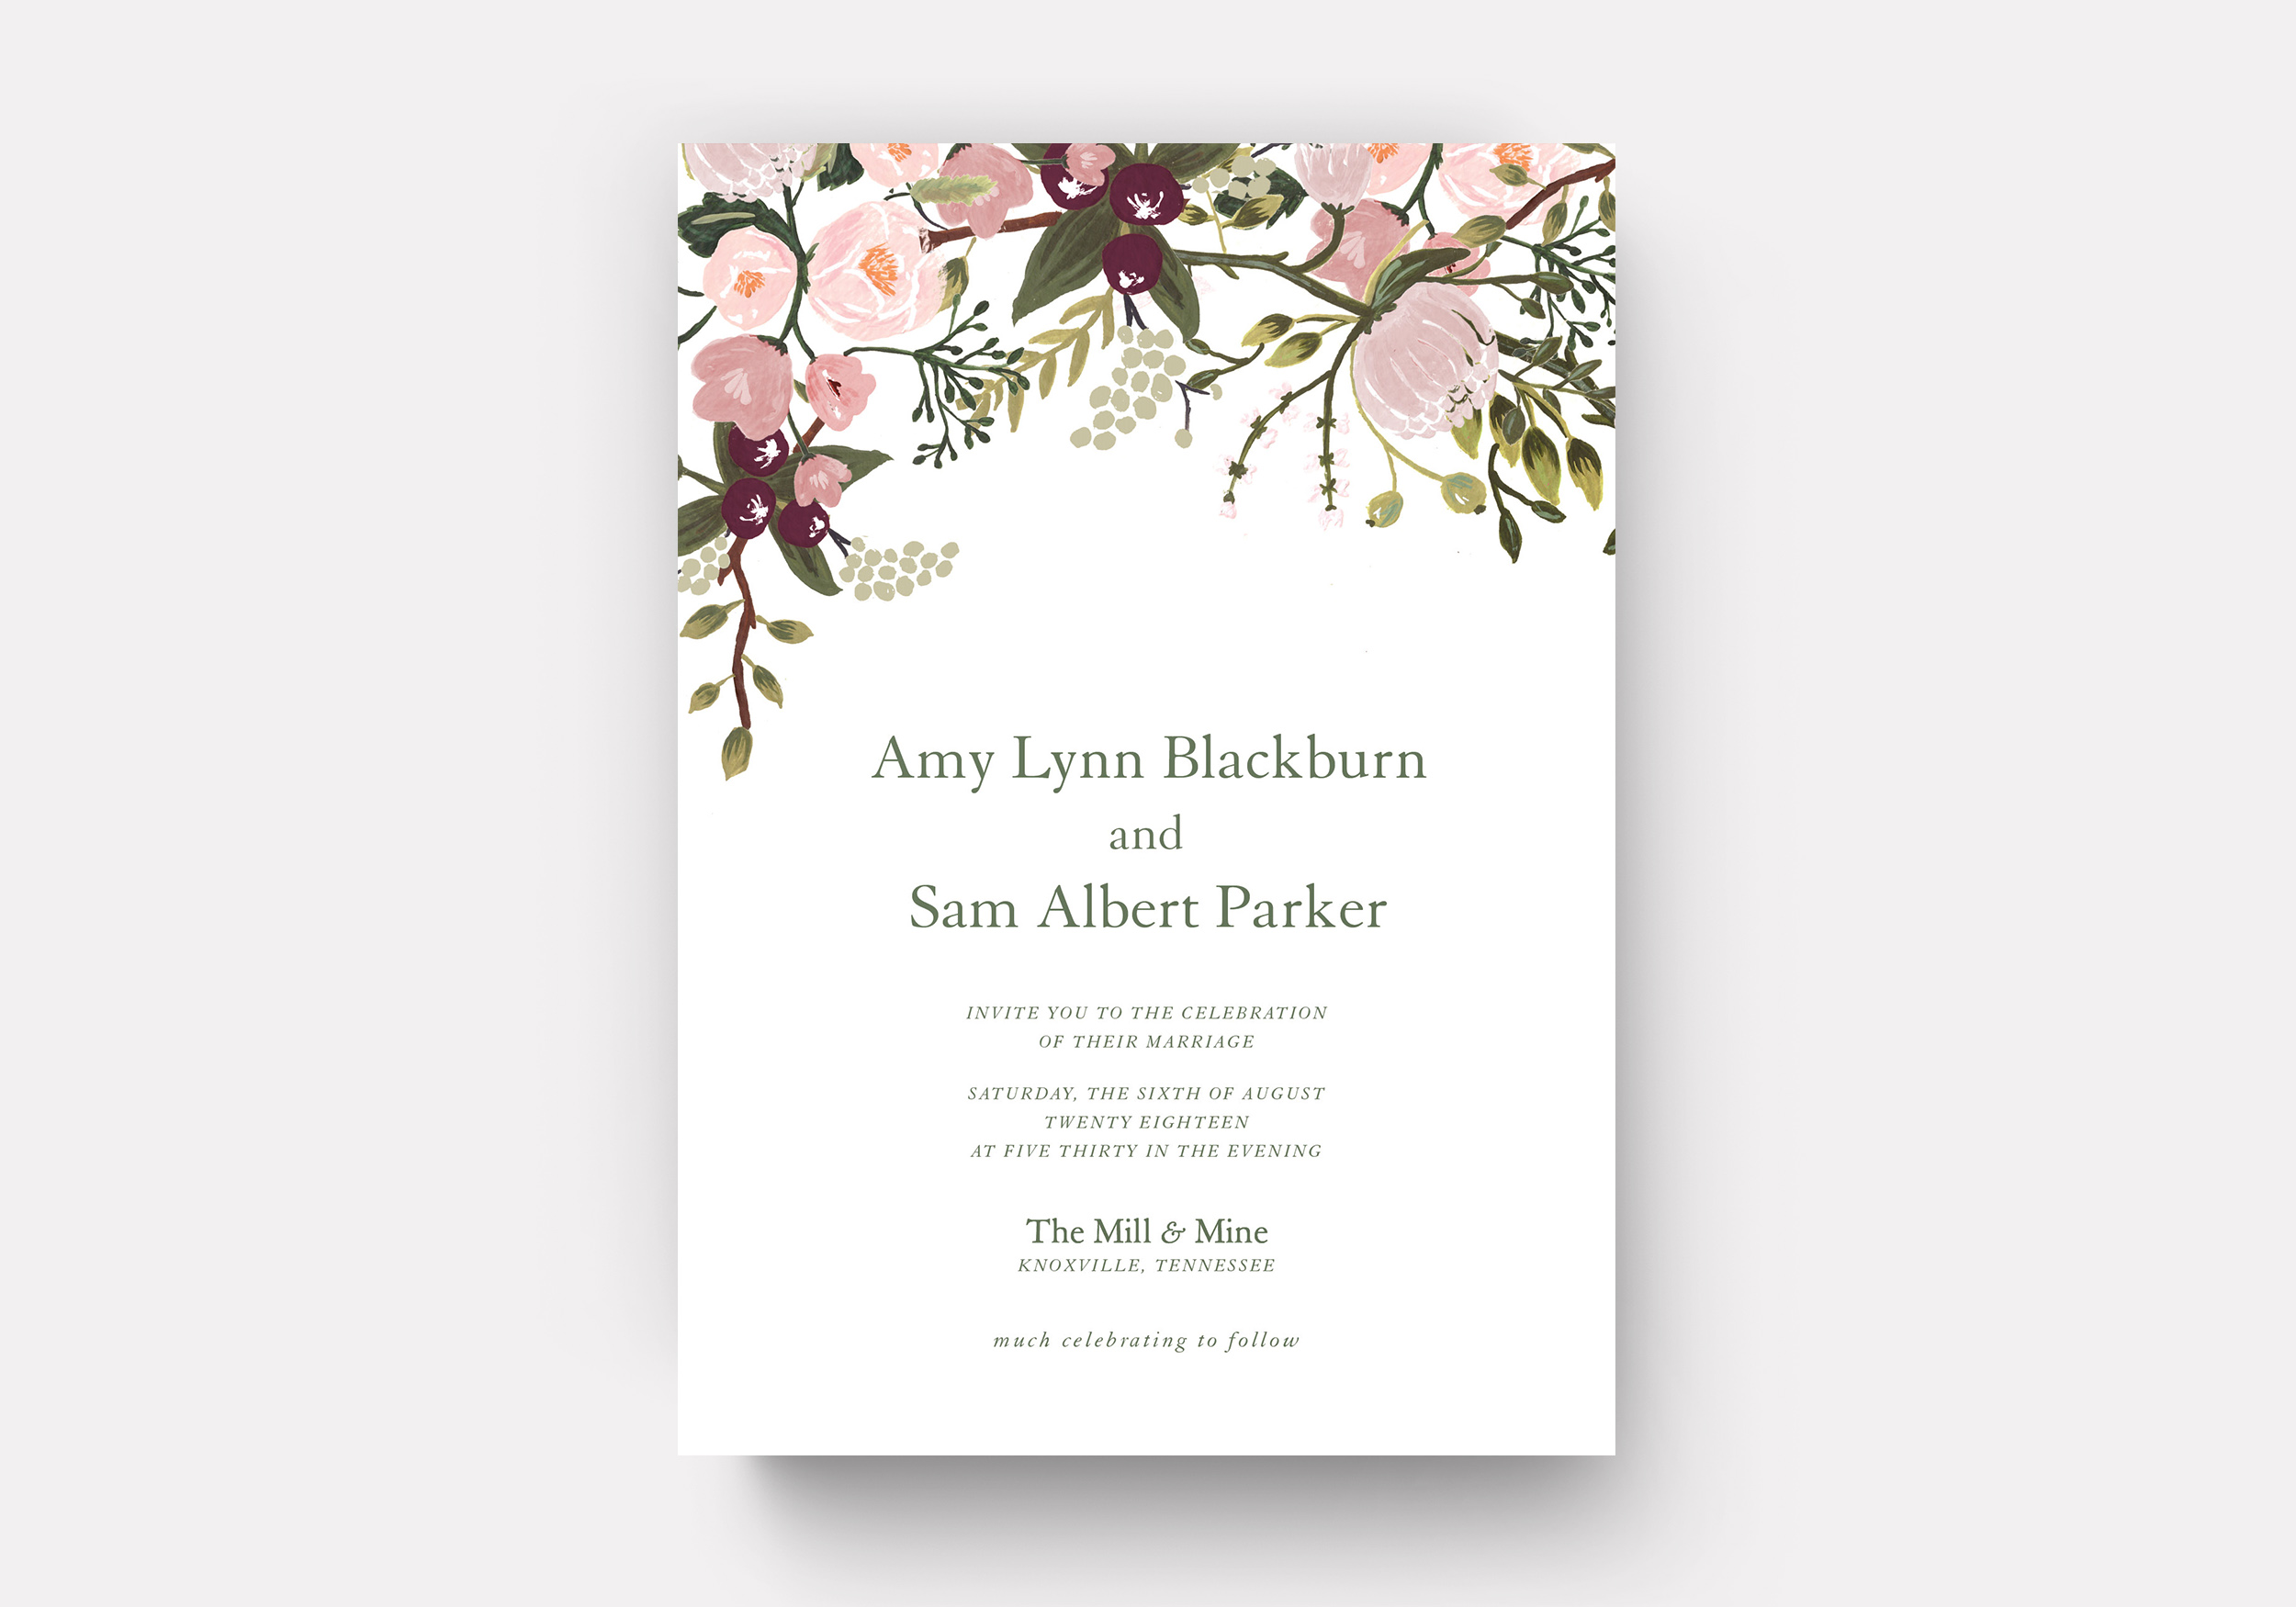 https://www.etsy.com/listing/572442949/floral-wedding-invitation-watercolor?ref=shop_home_active_8